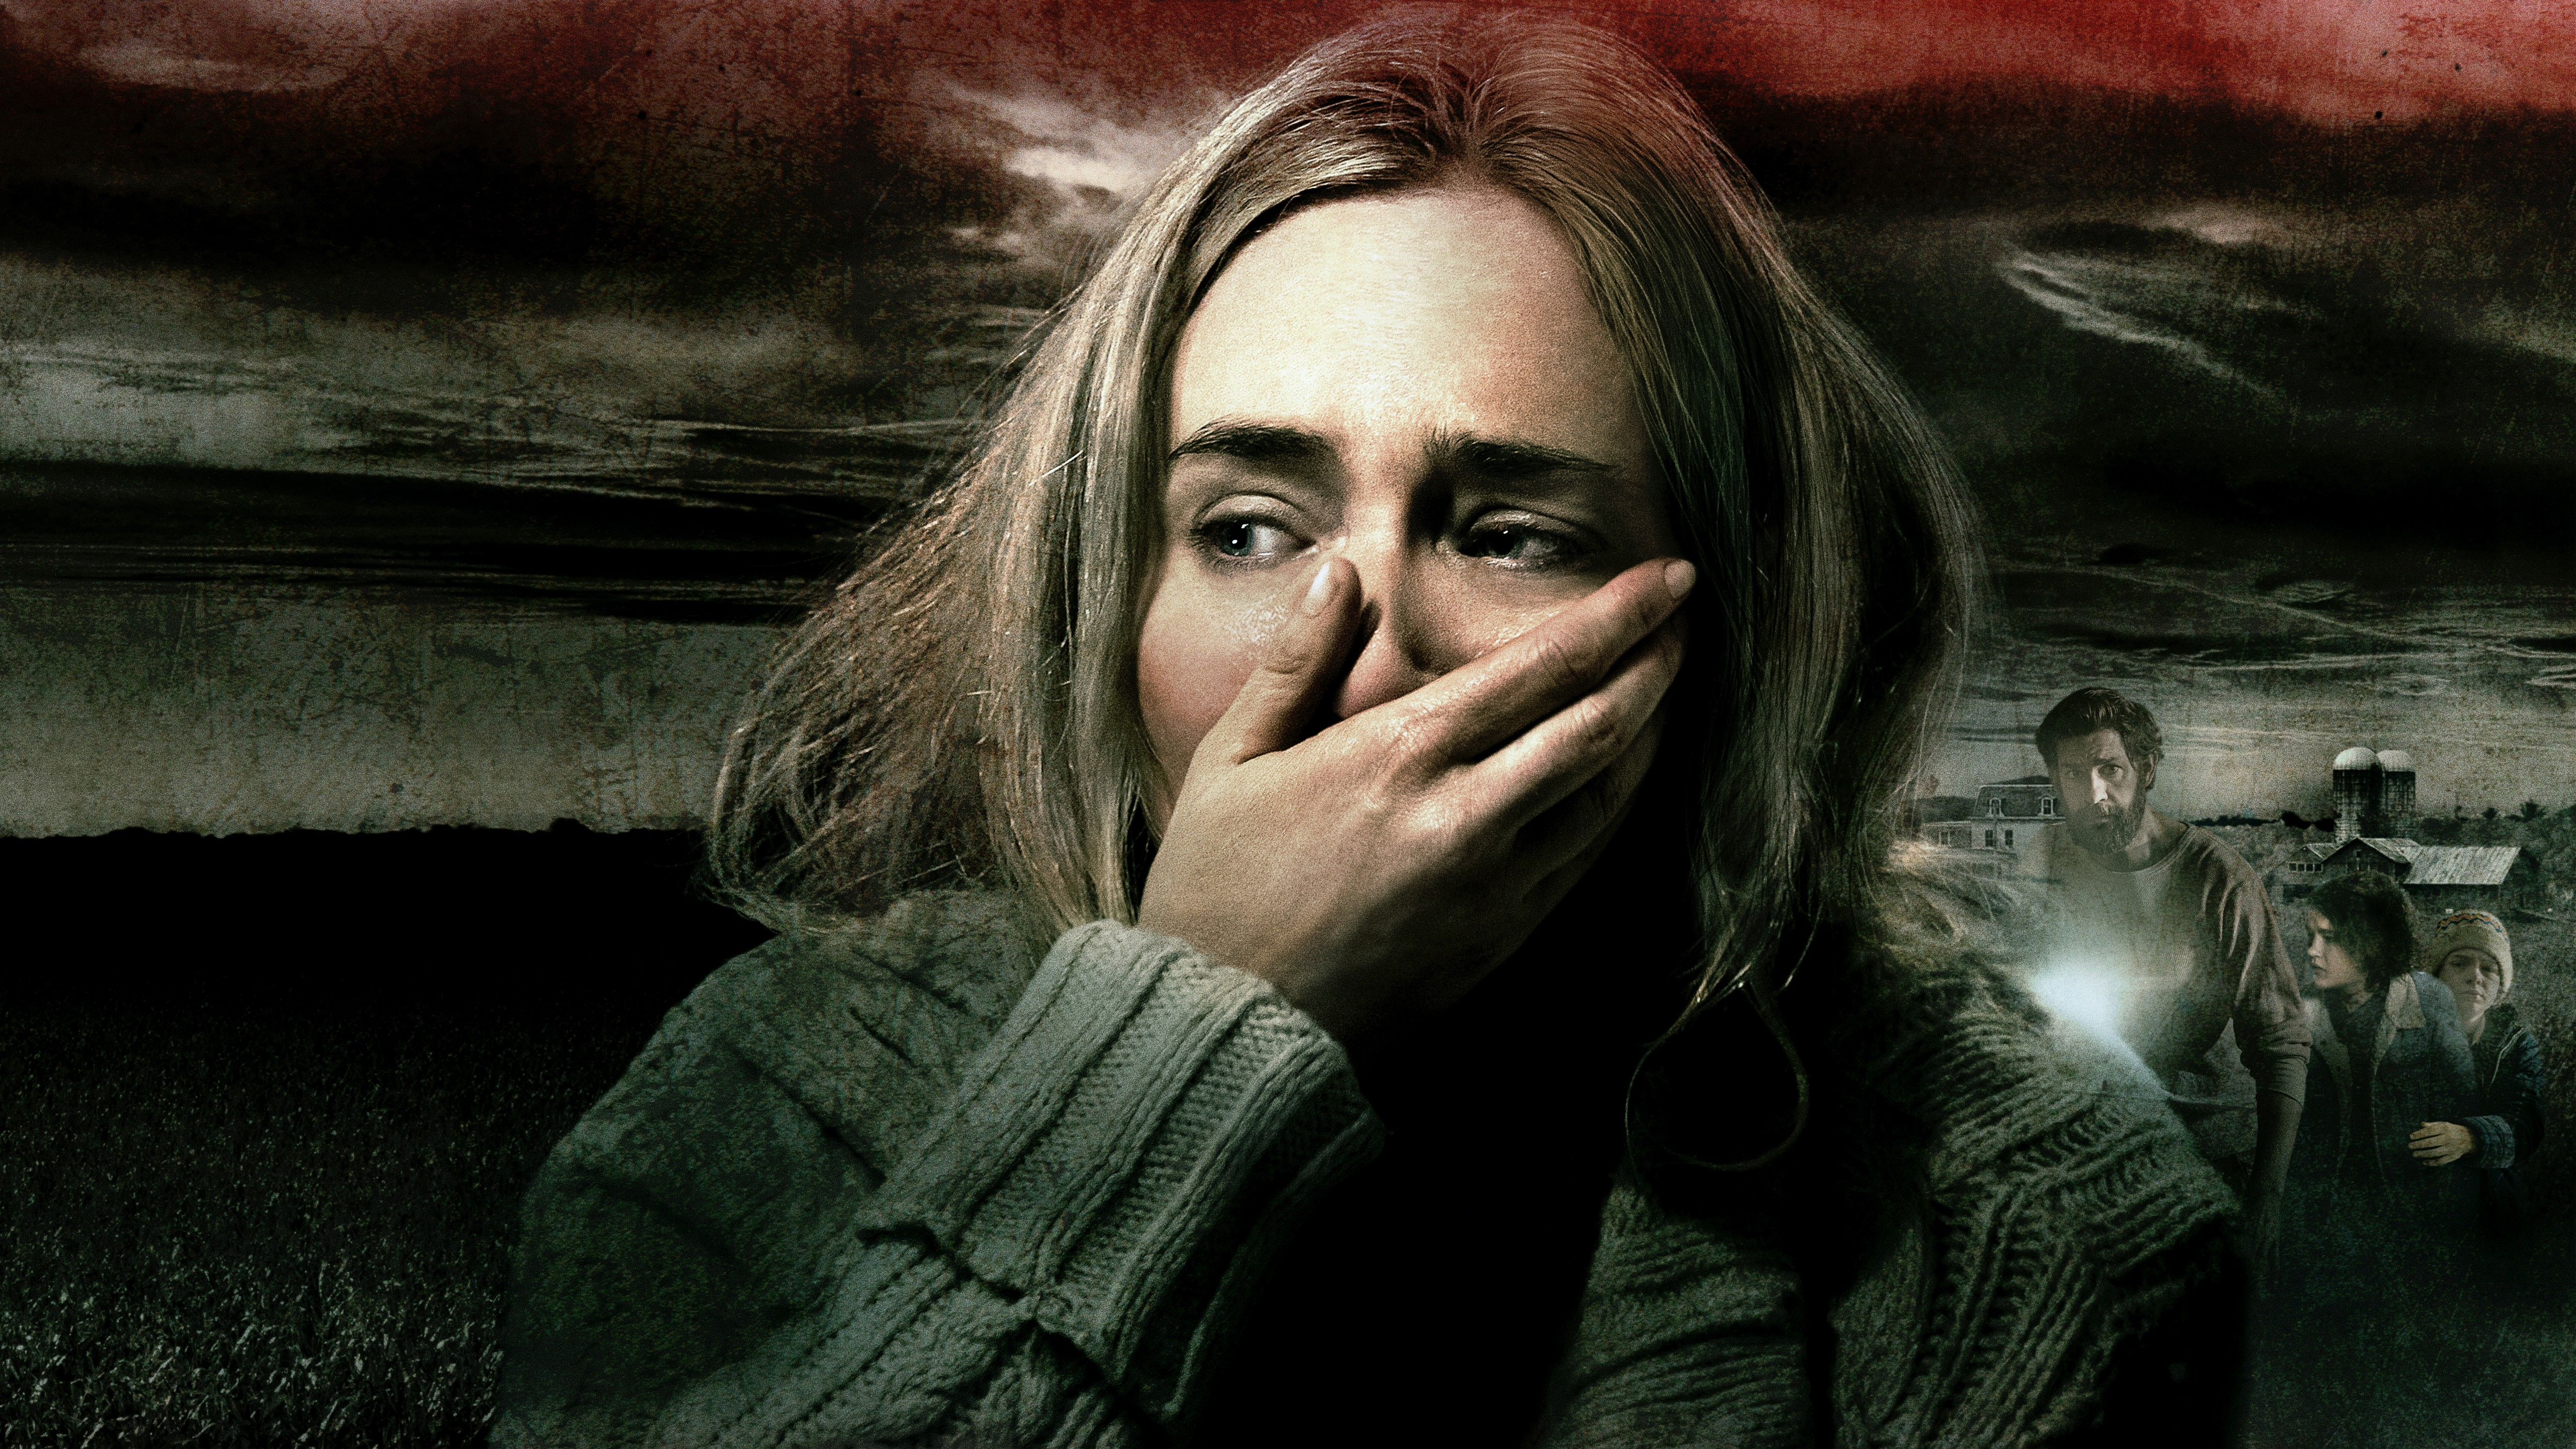 Cute Guy Iphone Wallpaper A Quiet Place Emily Blunt 4k 8k Wallpapers Hd Wallpapers